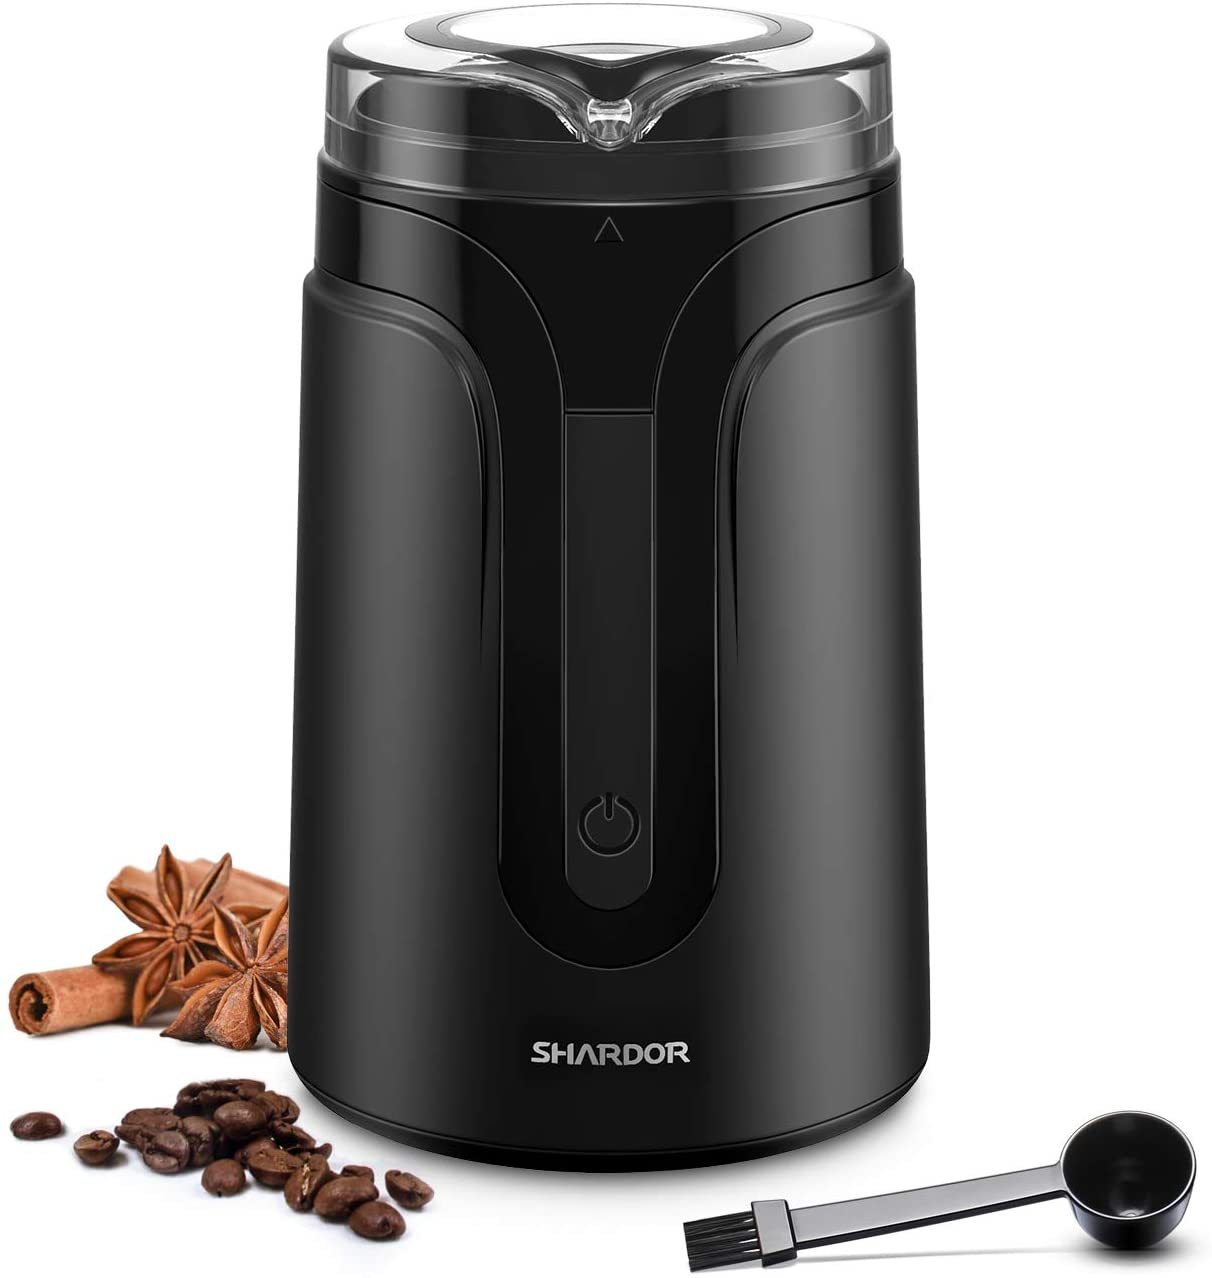 Sararoom Coffee Bean And Spice Grinder Mill 110V Low Noise DC Motor With Stainless Steel Body And Blades For Burr Spices Herbs And More Wisson Electric Coffee Grinder Coffee Bean Nuts